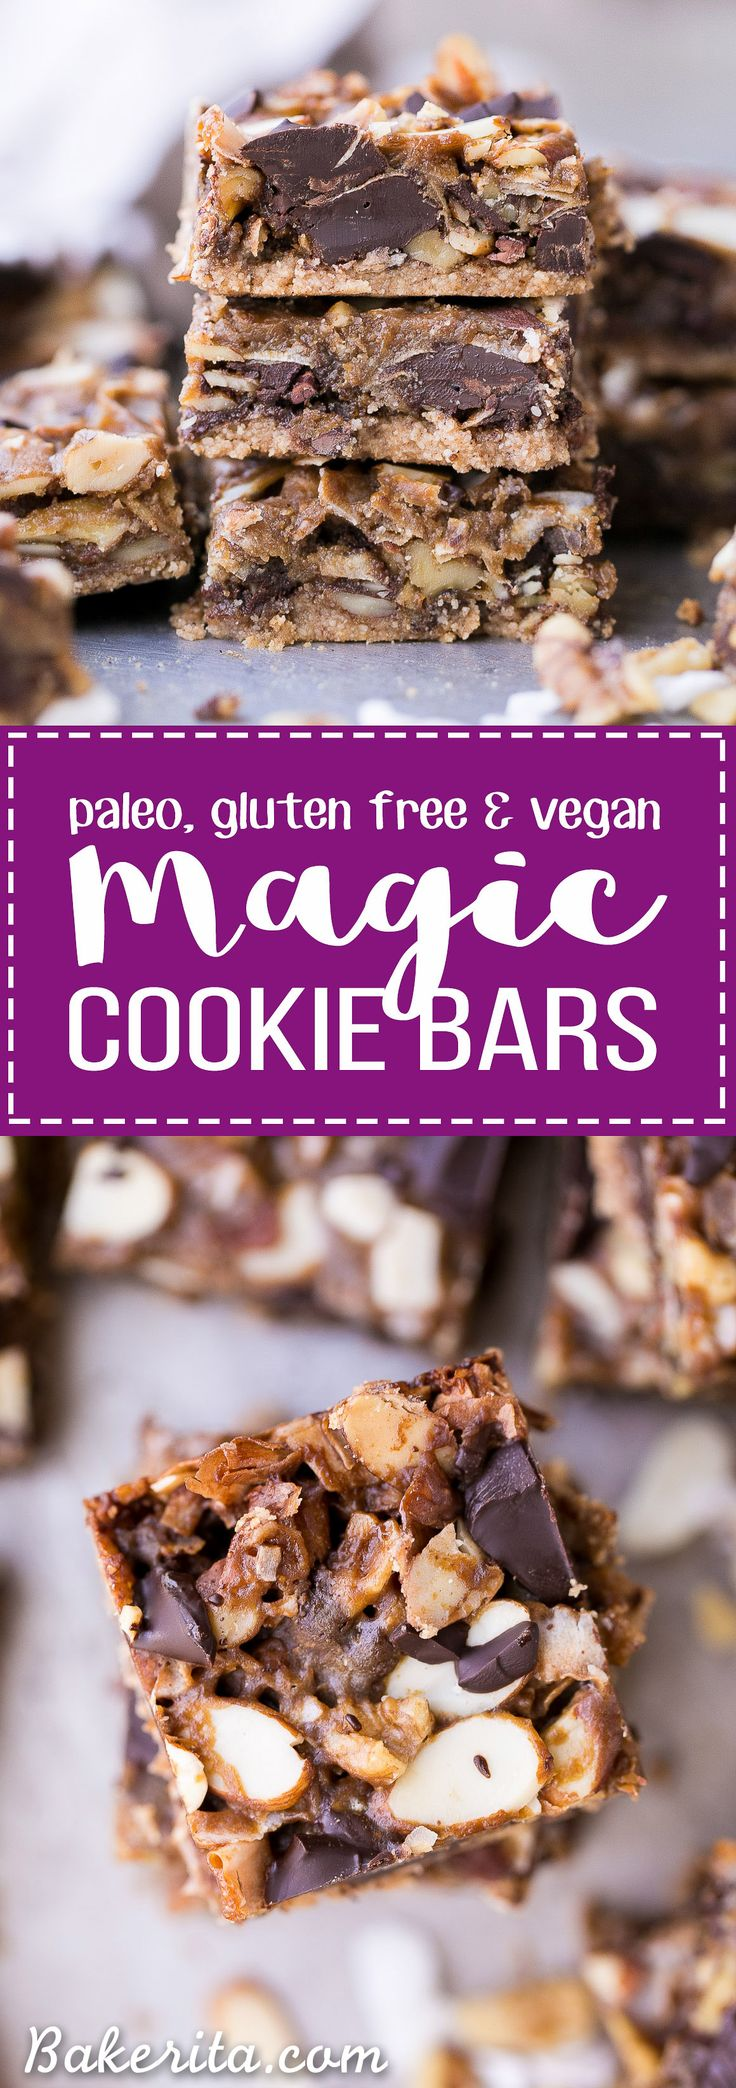 These Paleo Magic Cookie Bars are just as rich and delicious as the classic seven layer bars you know and love! This gluten-free, vegan, and refined sugar free version has an almond flour crust and ho